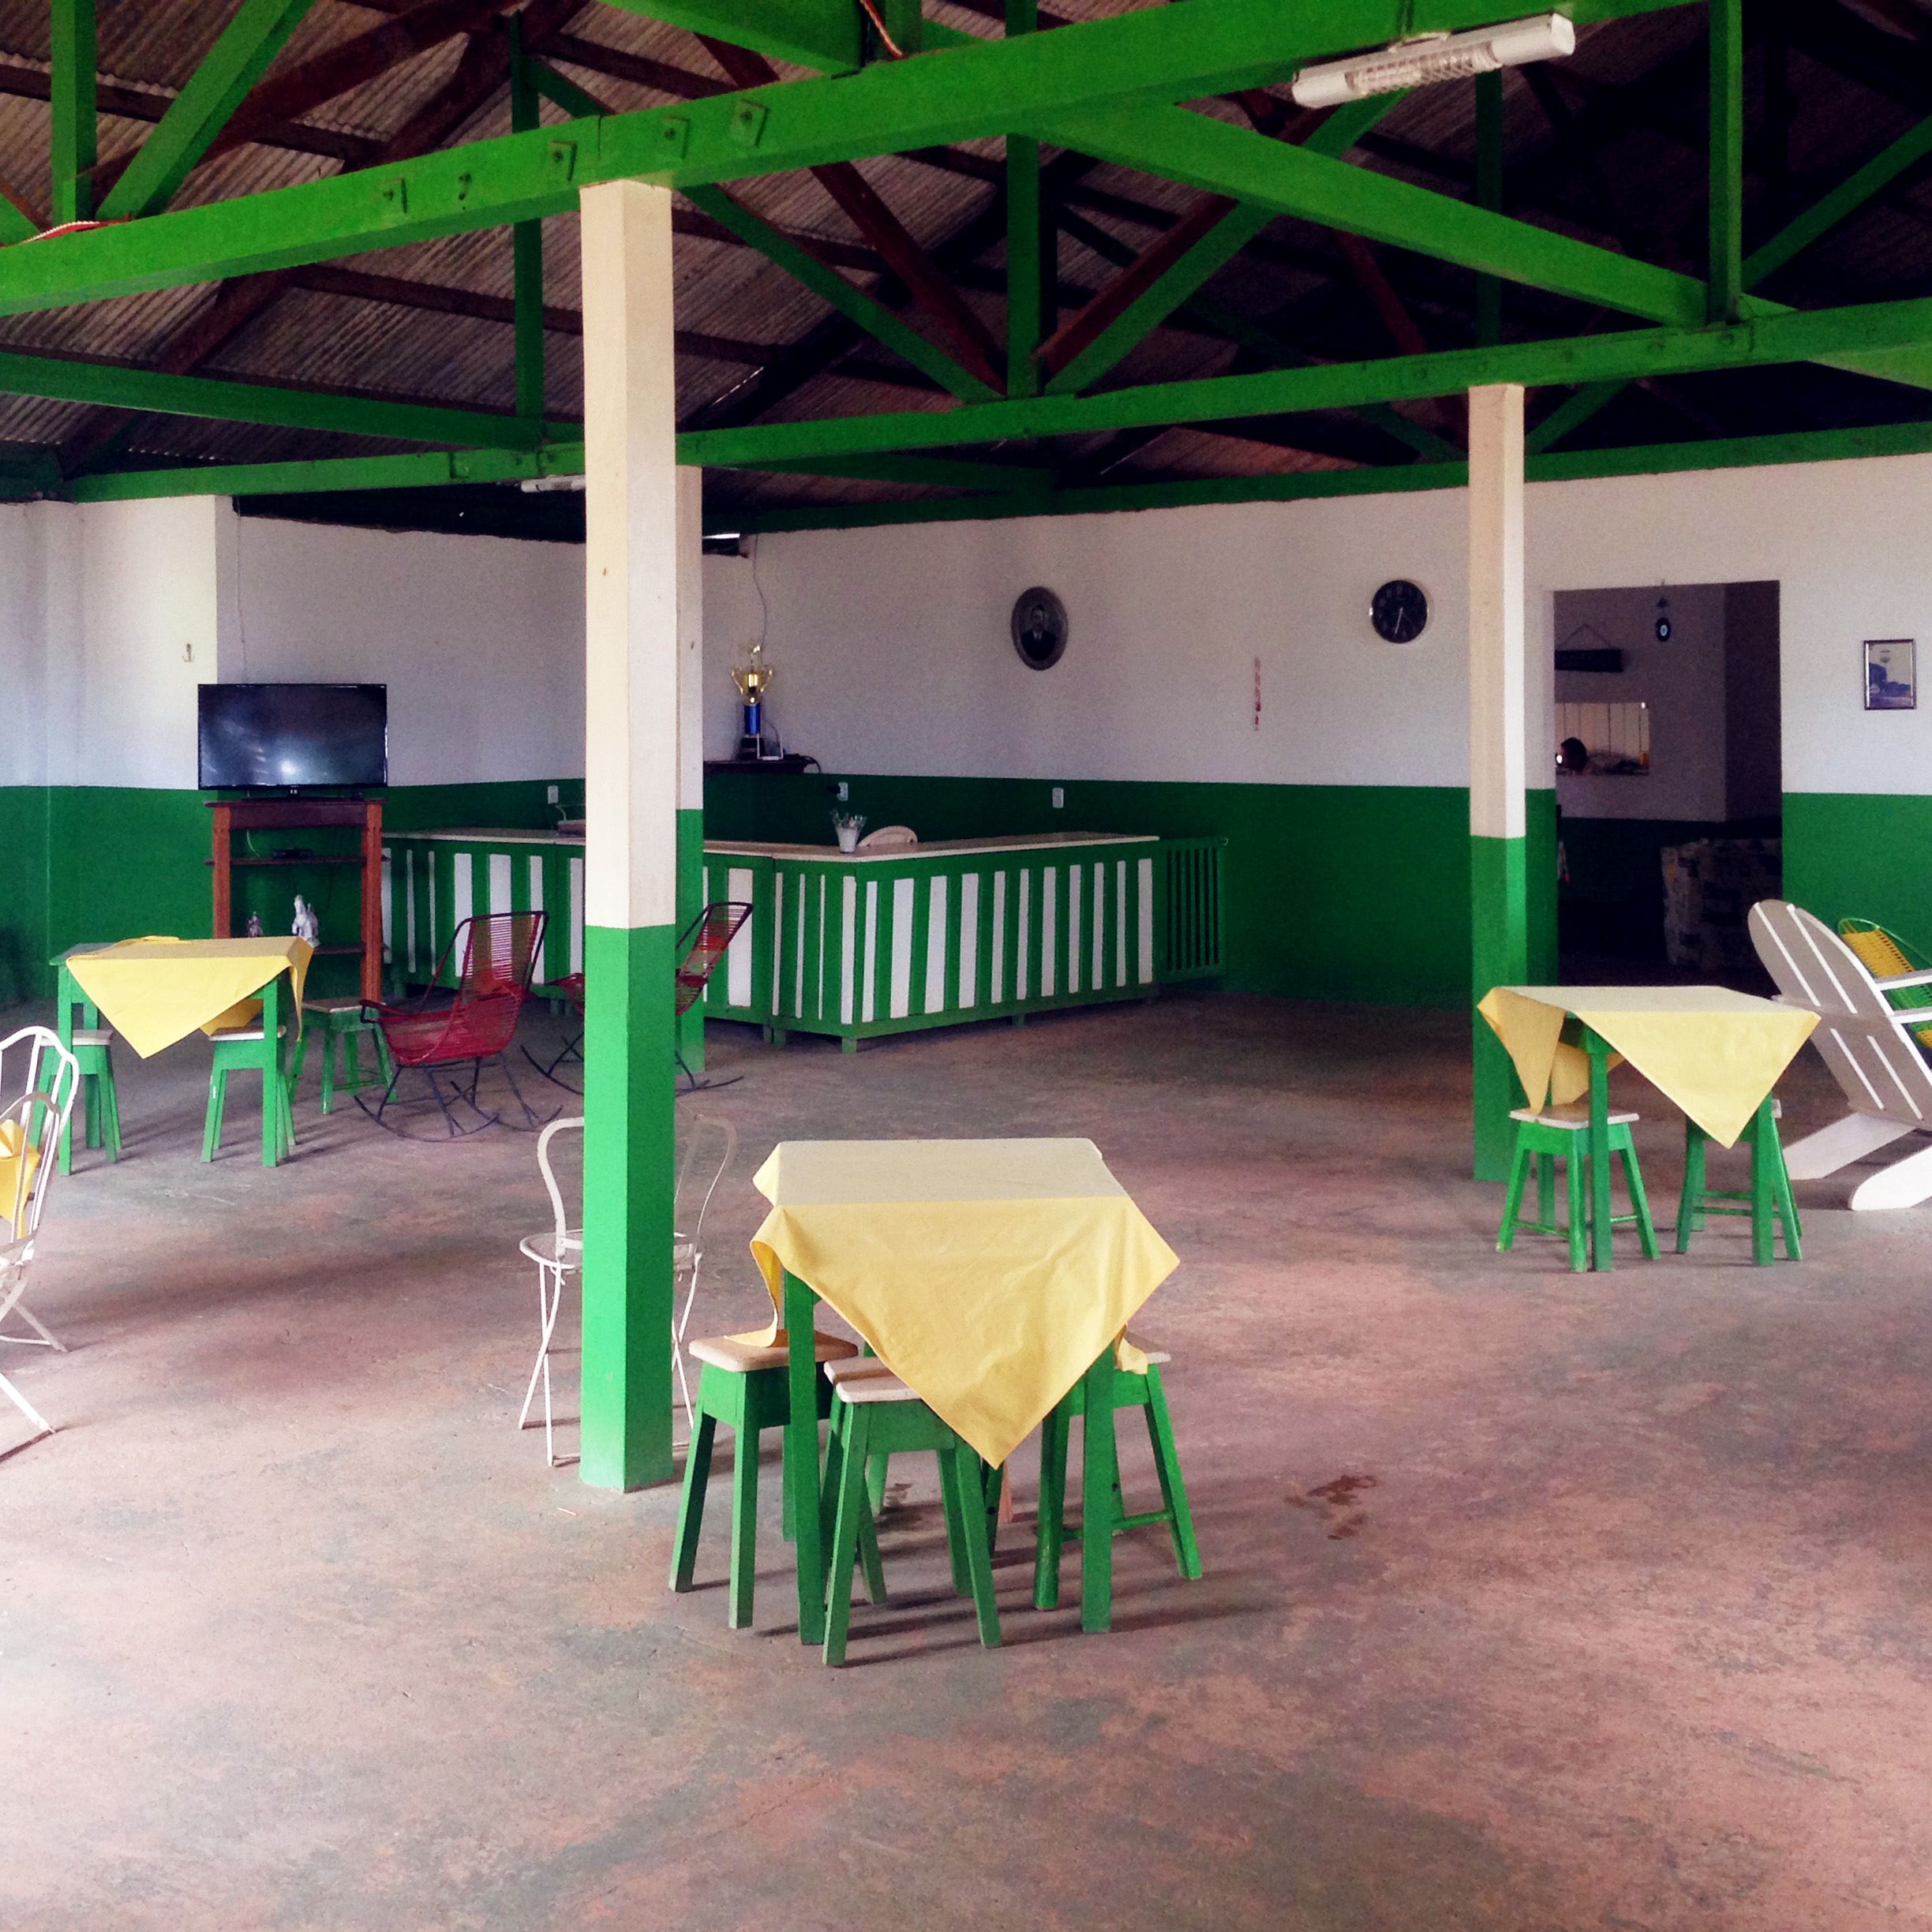 The canteen where the riot broke out. Today some sort of elderly home.